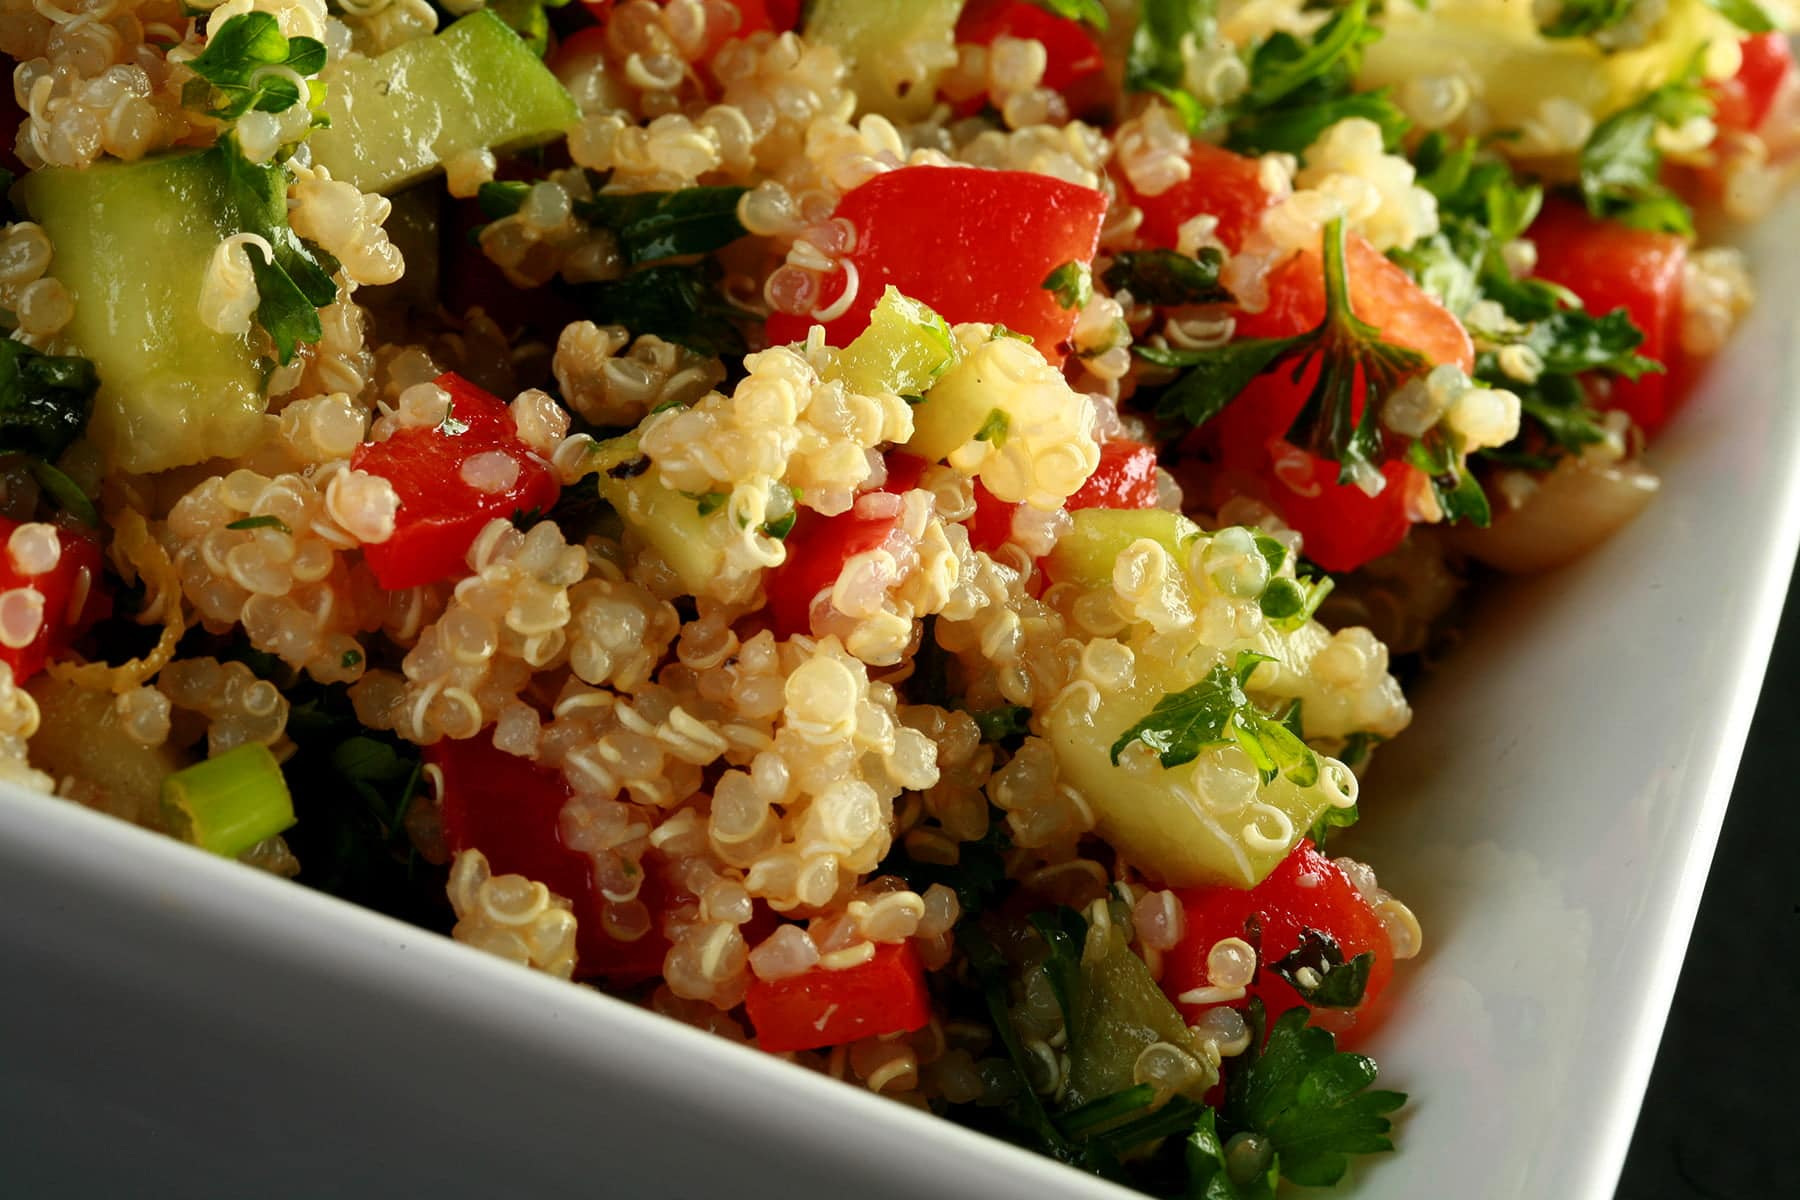 A square, white bowl holds a no-tomato quinoa based tabbouleh.  Beige quinoa, red pepper, cucumber, and parsley is visible throughout.